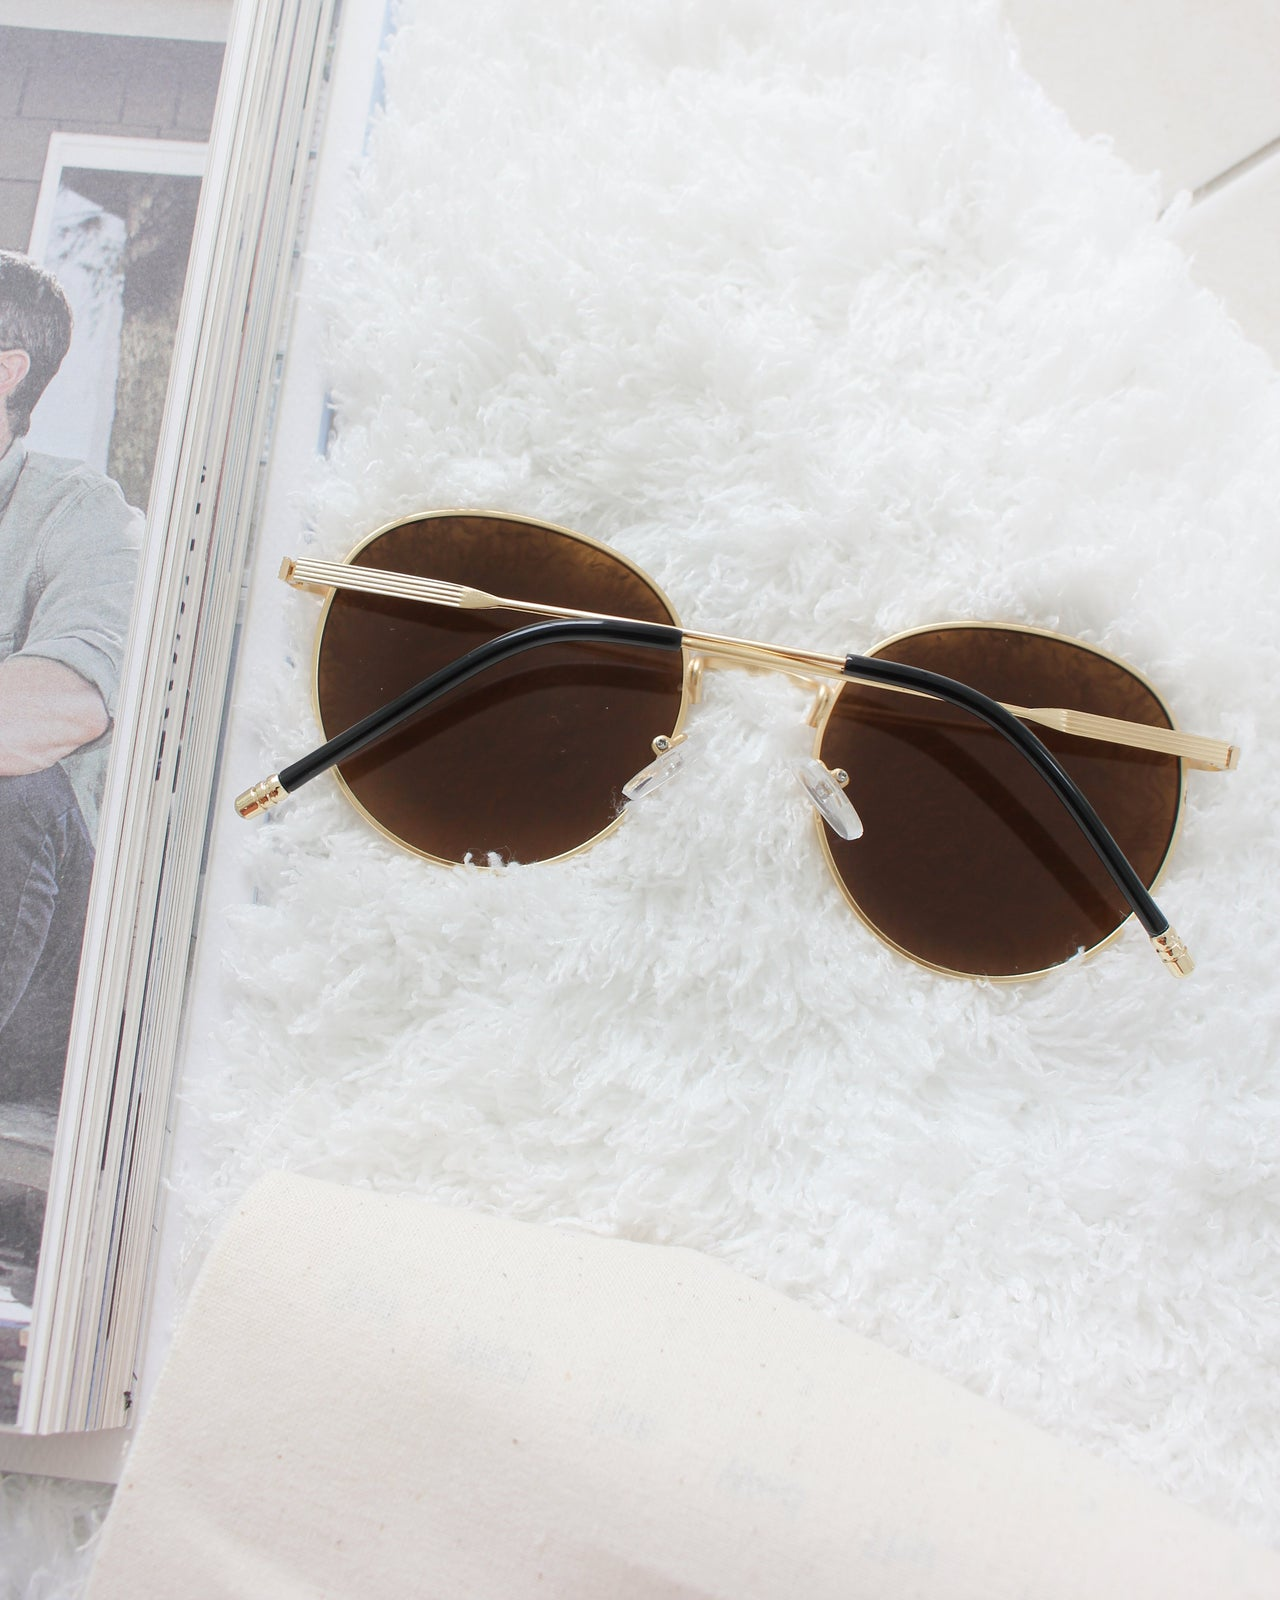 Brownish Sunglass - LovelyMadness Clothing Malaysia